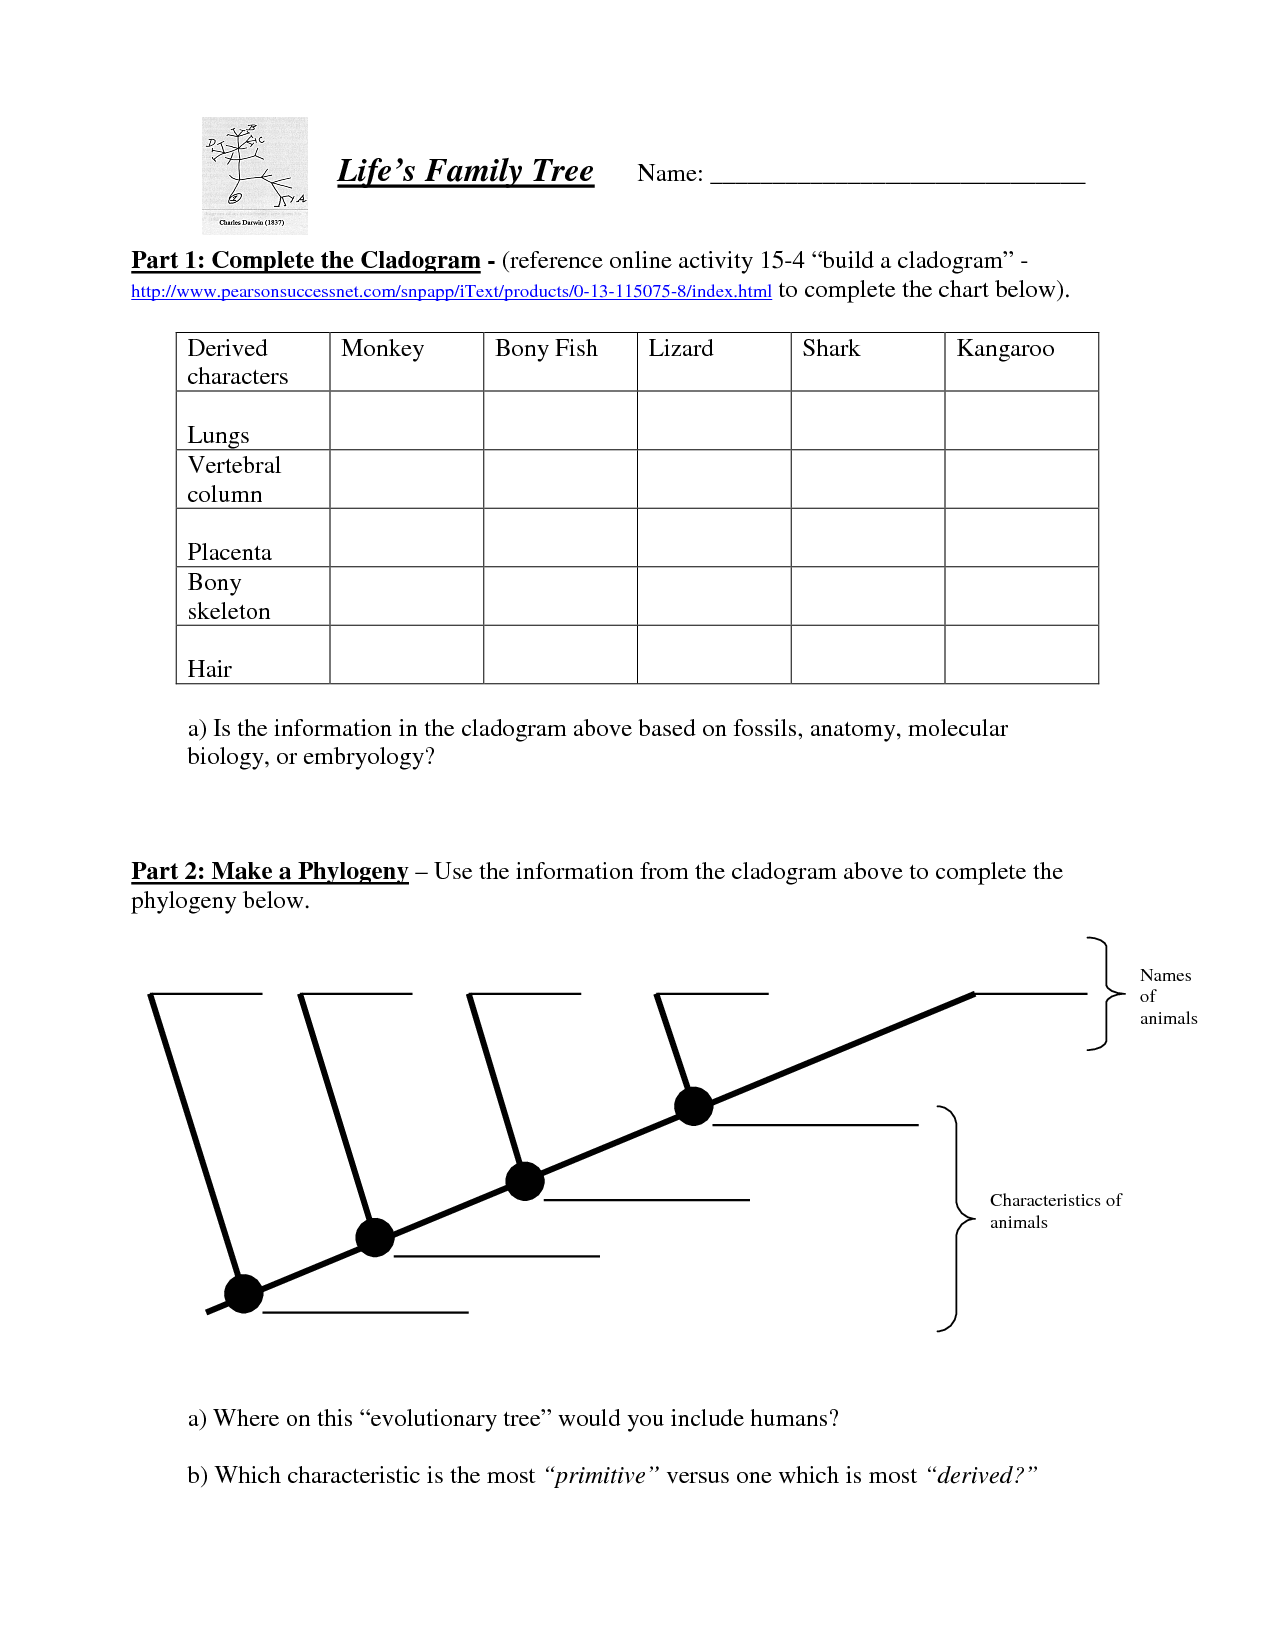 Phylogenetic Tree Worksheet Answers